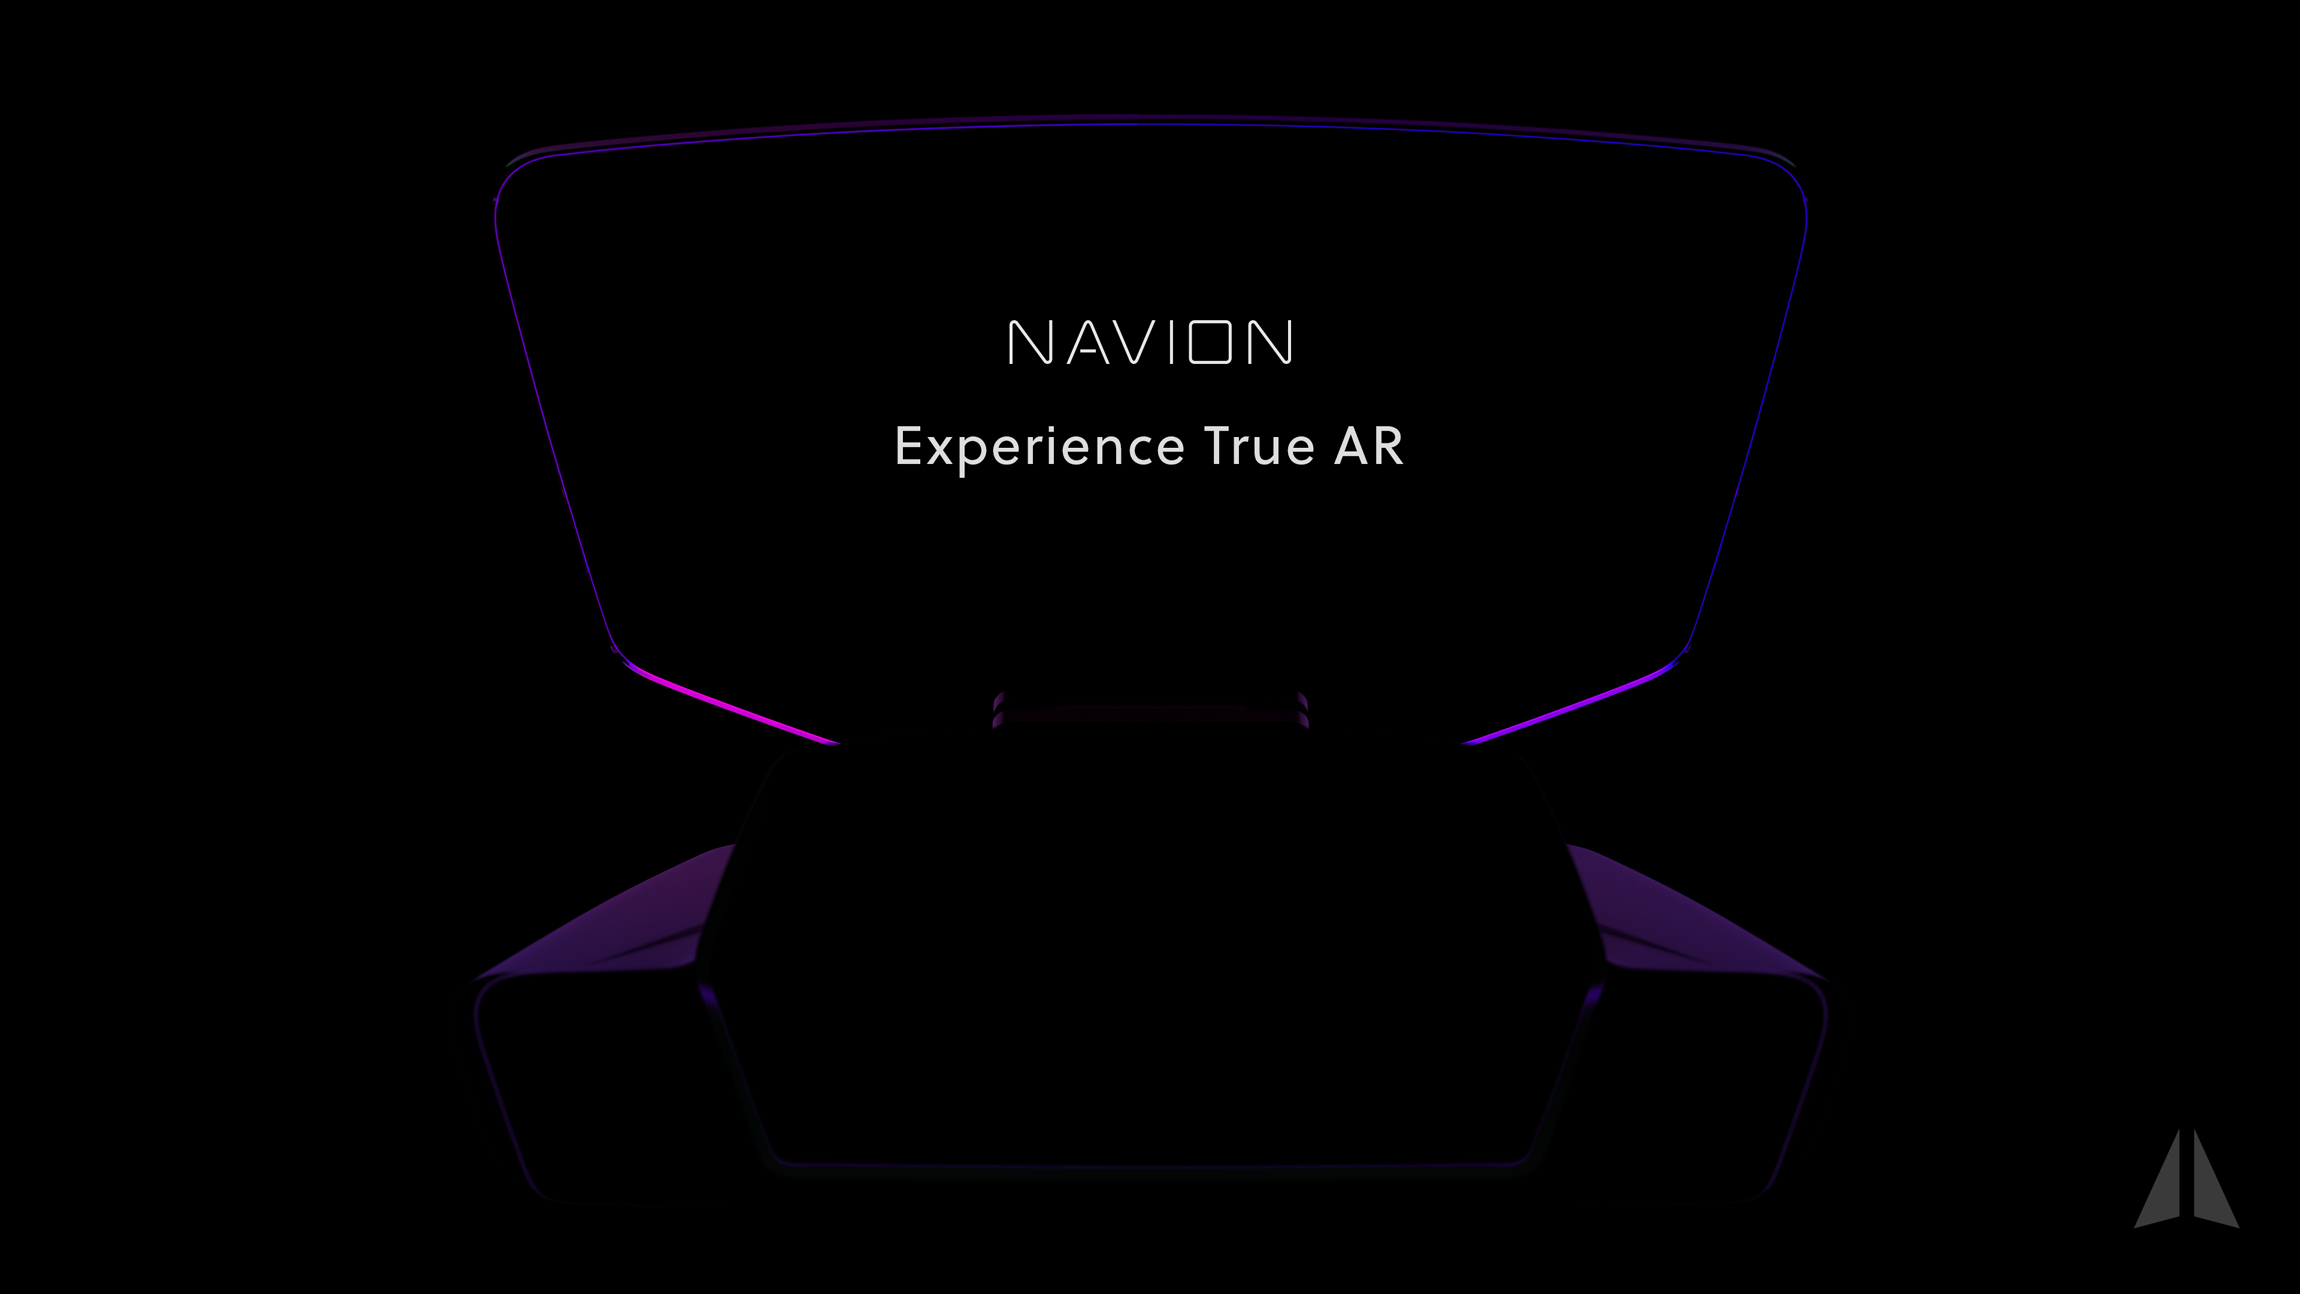 WayRay to Demo First Ever Holographic AR Navigation System with SDK